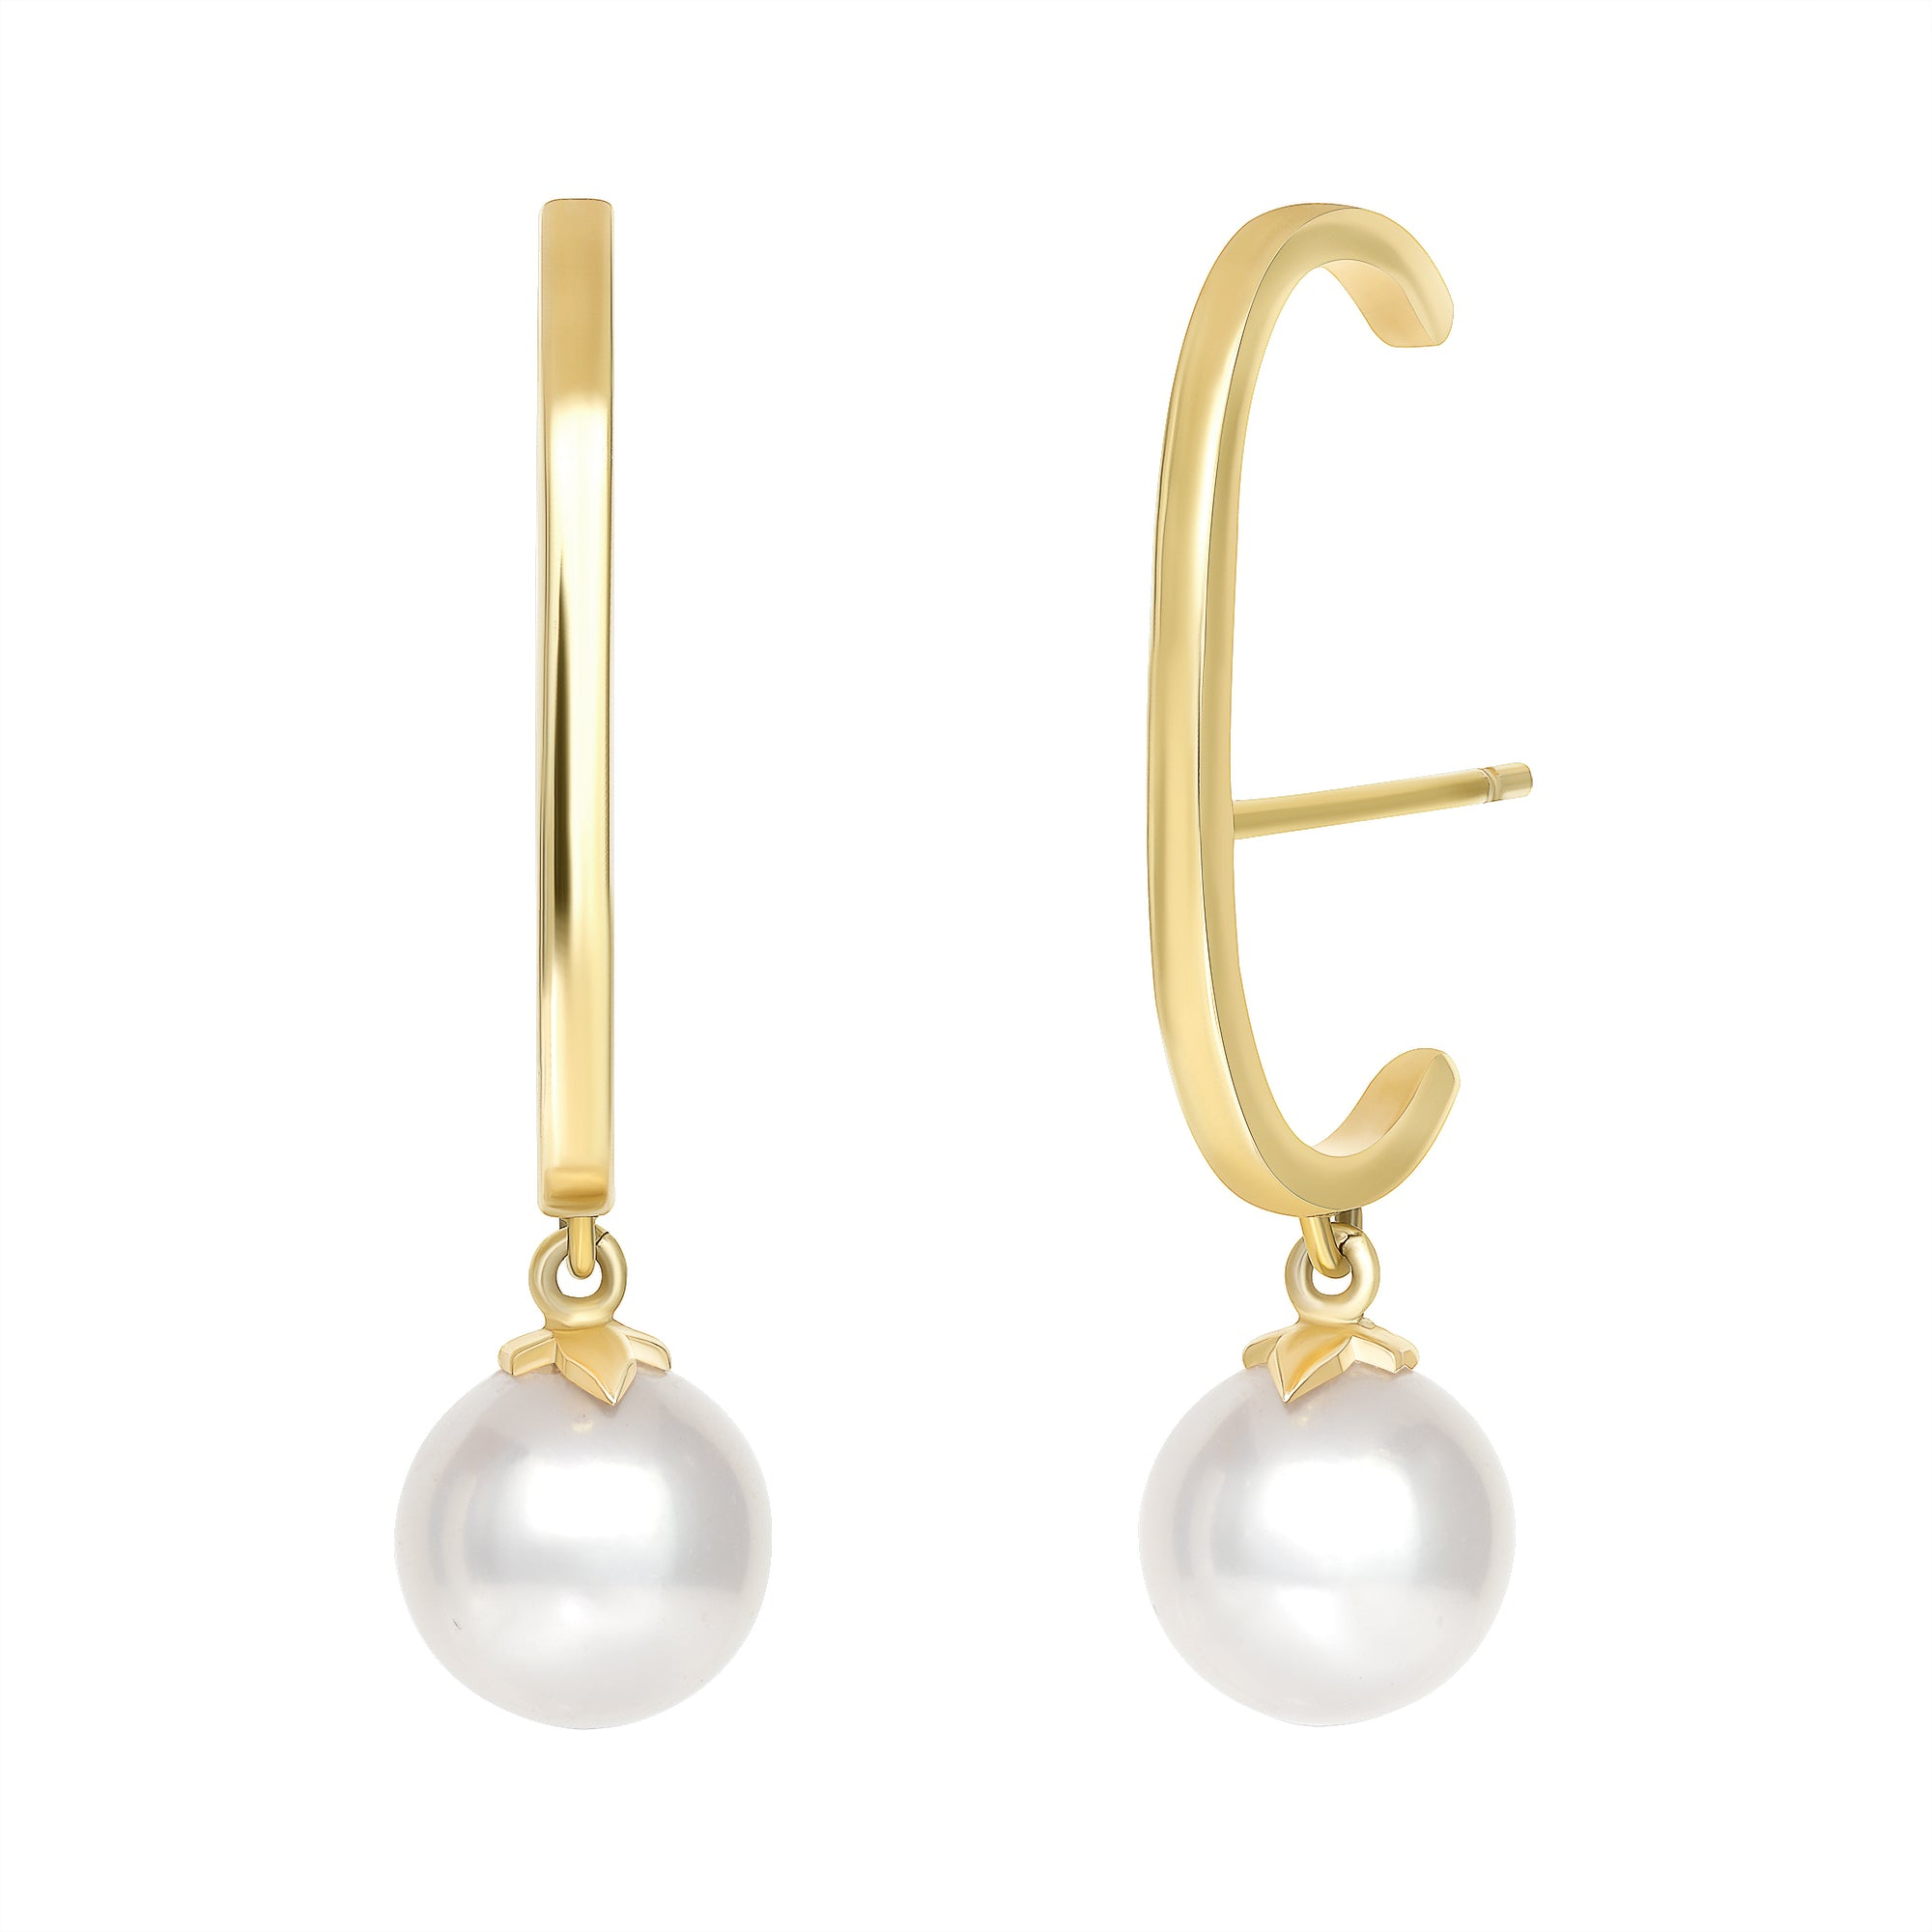 PEARL CUFF EARRINGS - MAKKO